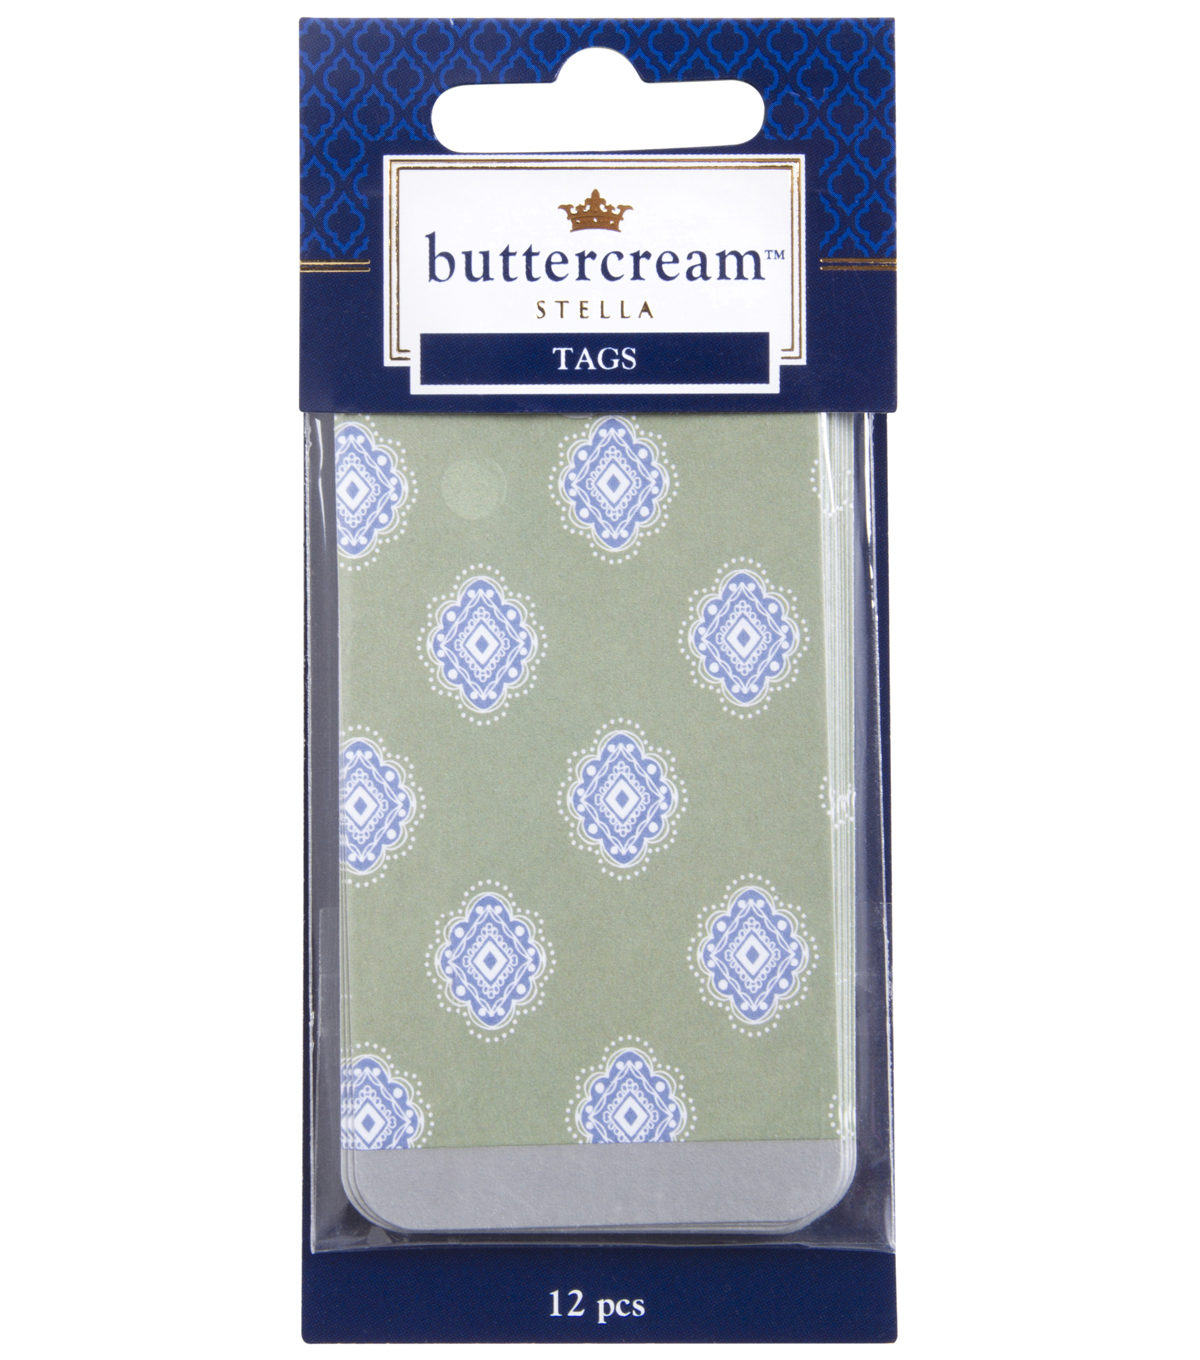 Buttercream™ Stella Collection Trendy Foil Tags